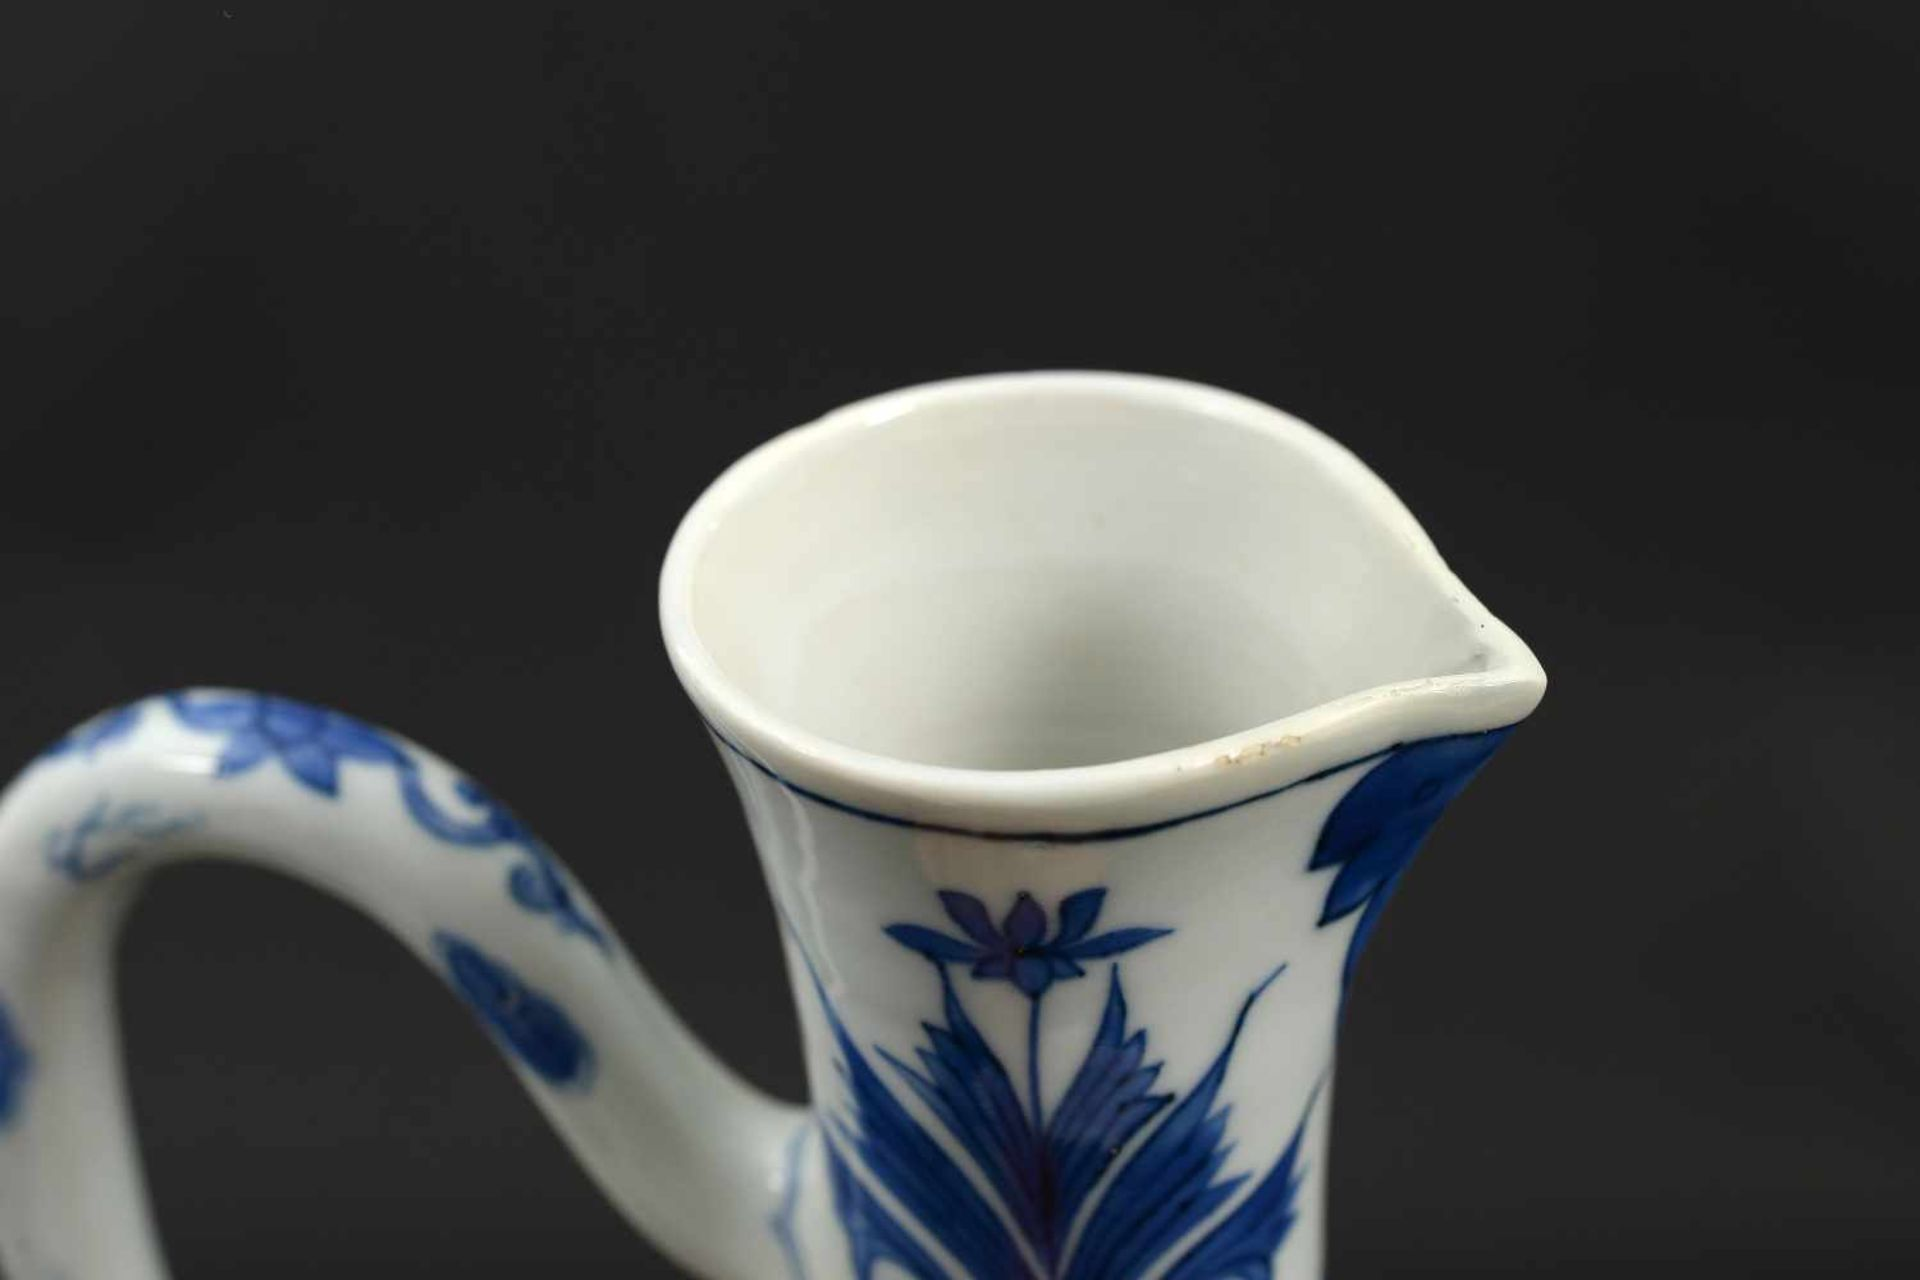 A blue and white porcelain jug, decorated with figures, a river landscape and flowers. Unmarked. - Bild 8 aus 9